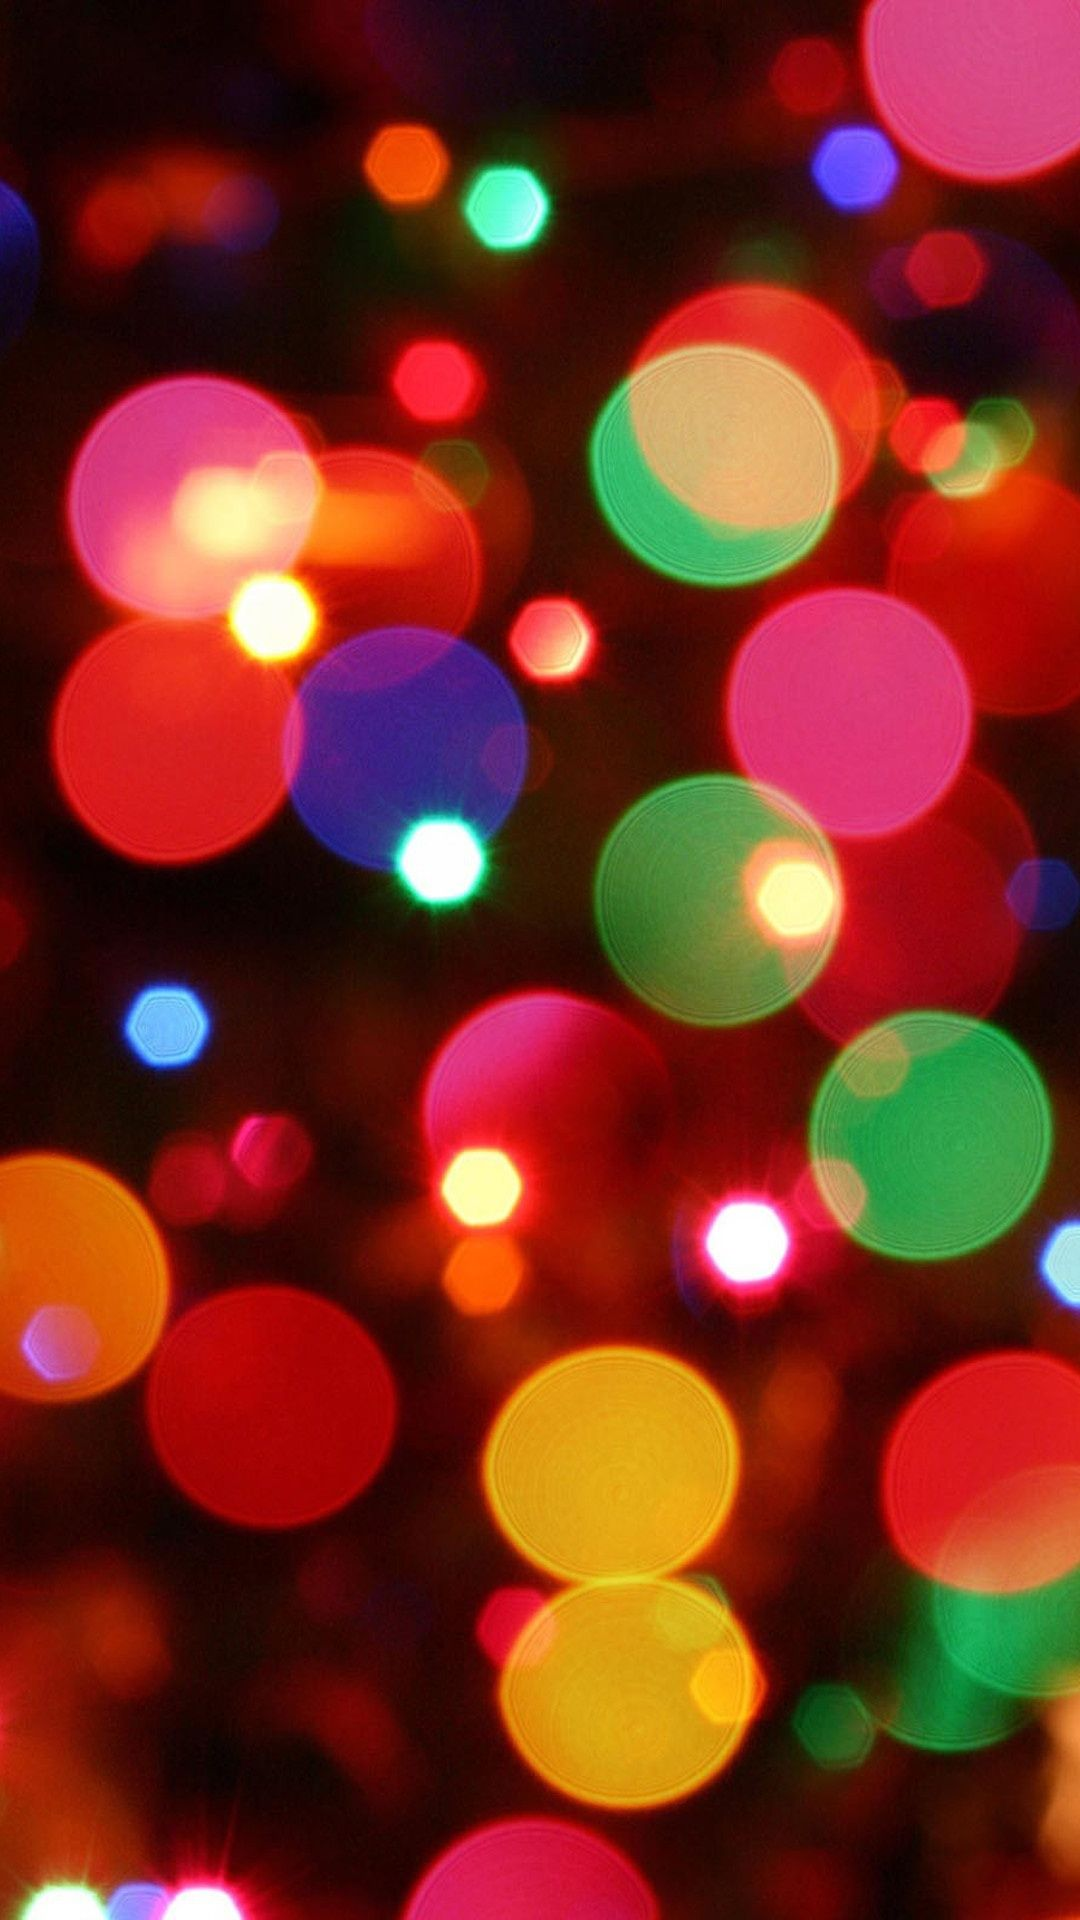 18 blurred gradient amp bokeh lights backgrounds collection